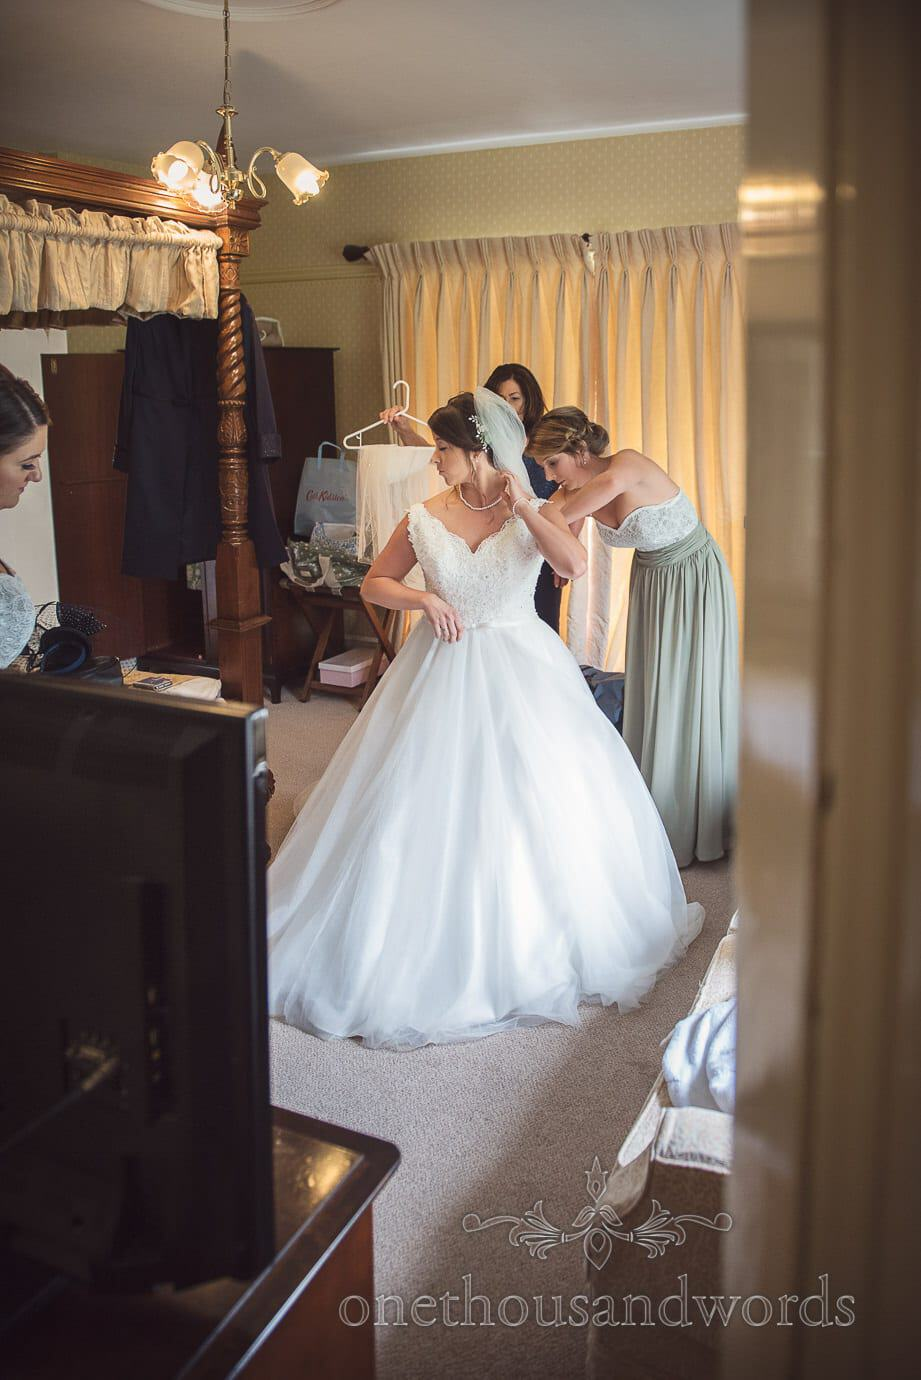 Bride puts on white wedding dress in hotel room with four poster wooden bed